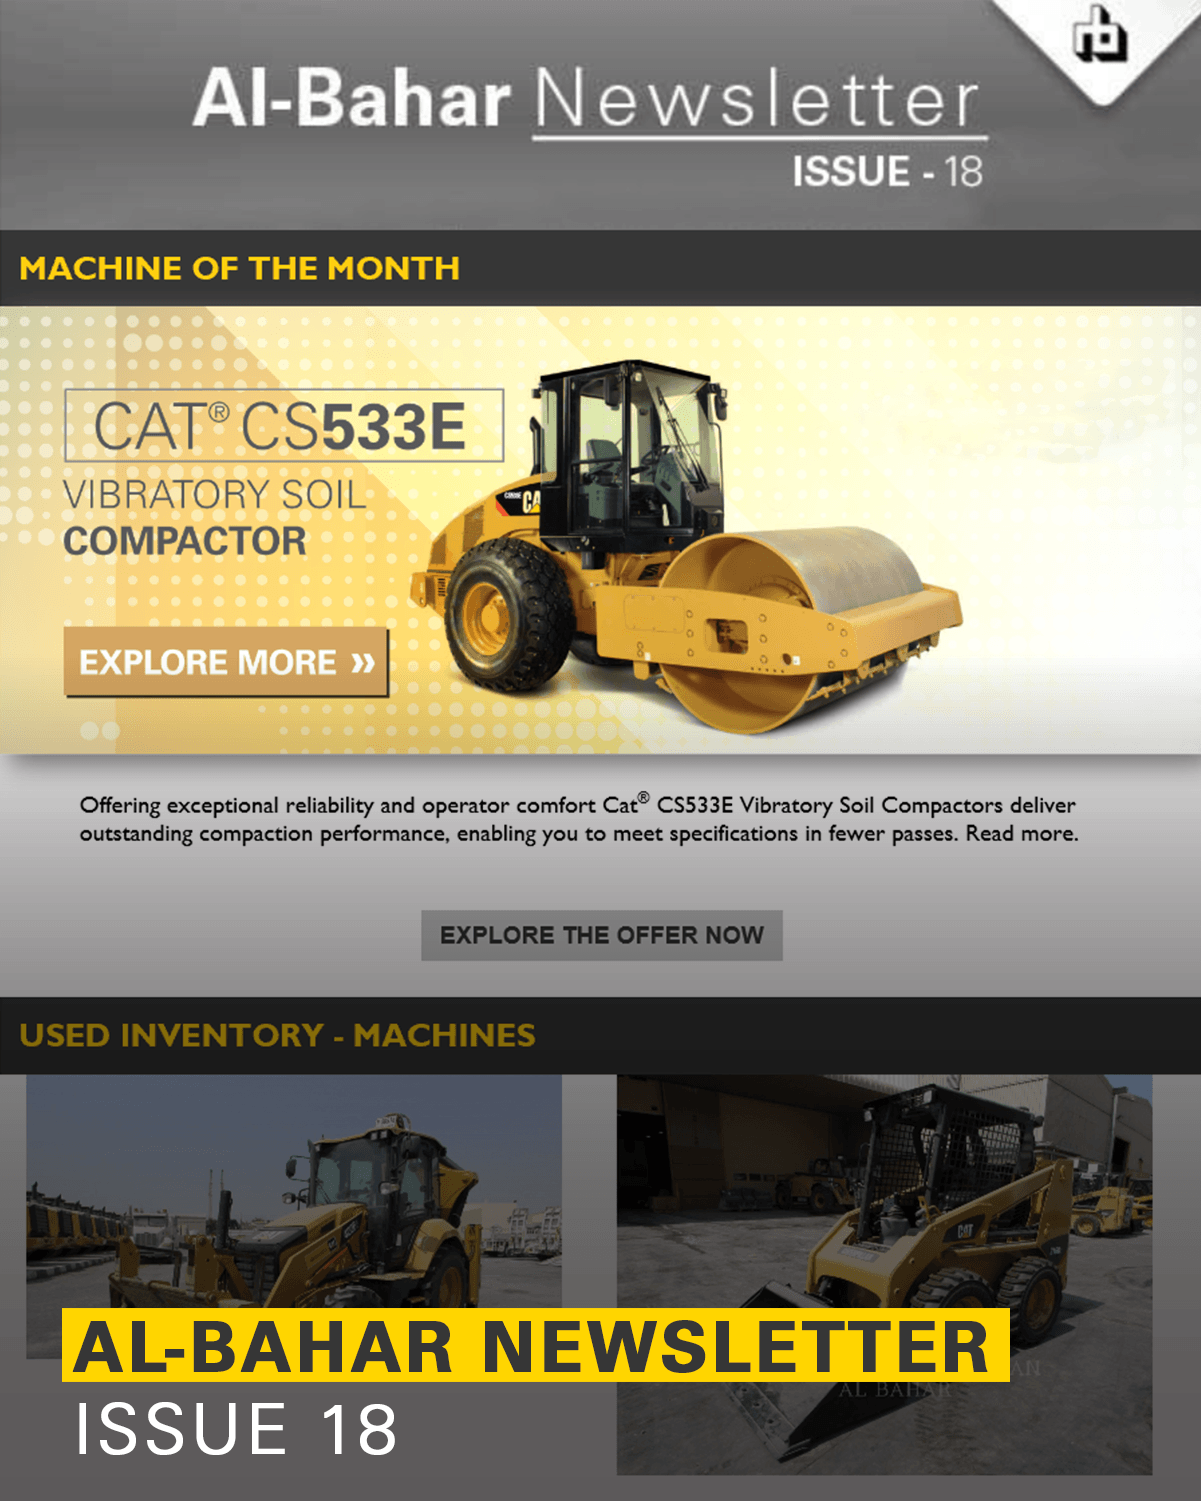 al-bahar-2018-newsletter-issue-18